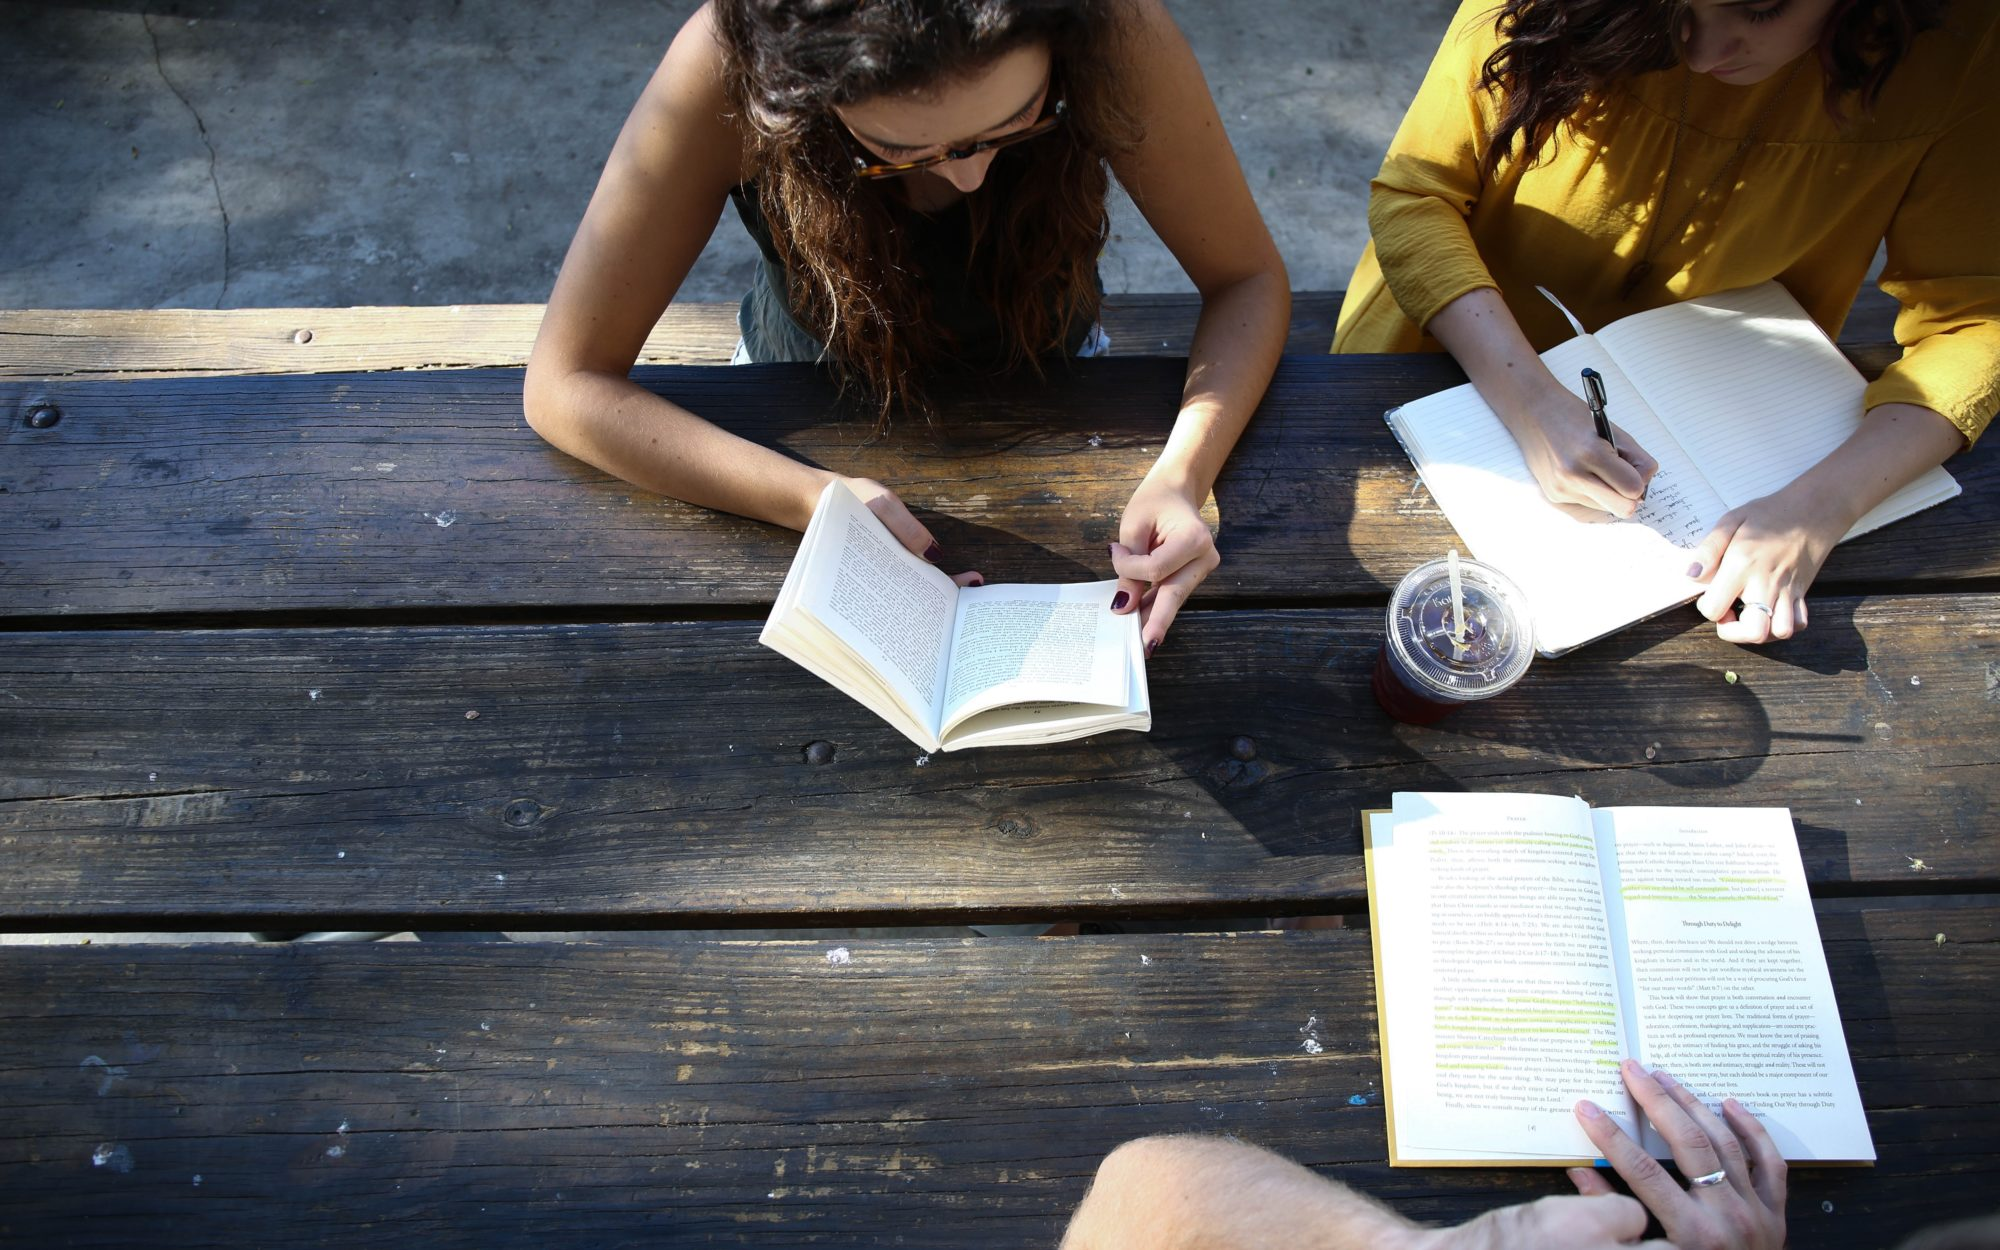 Three girls writing in separate notepads on a bench outdoors